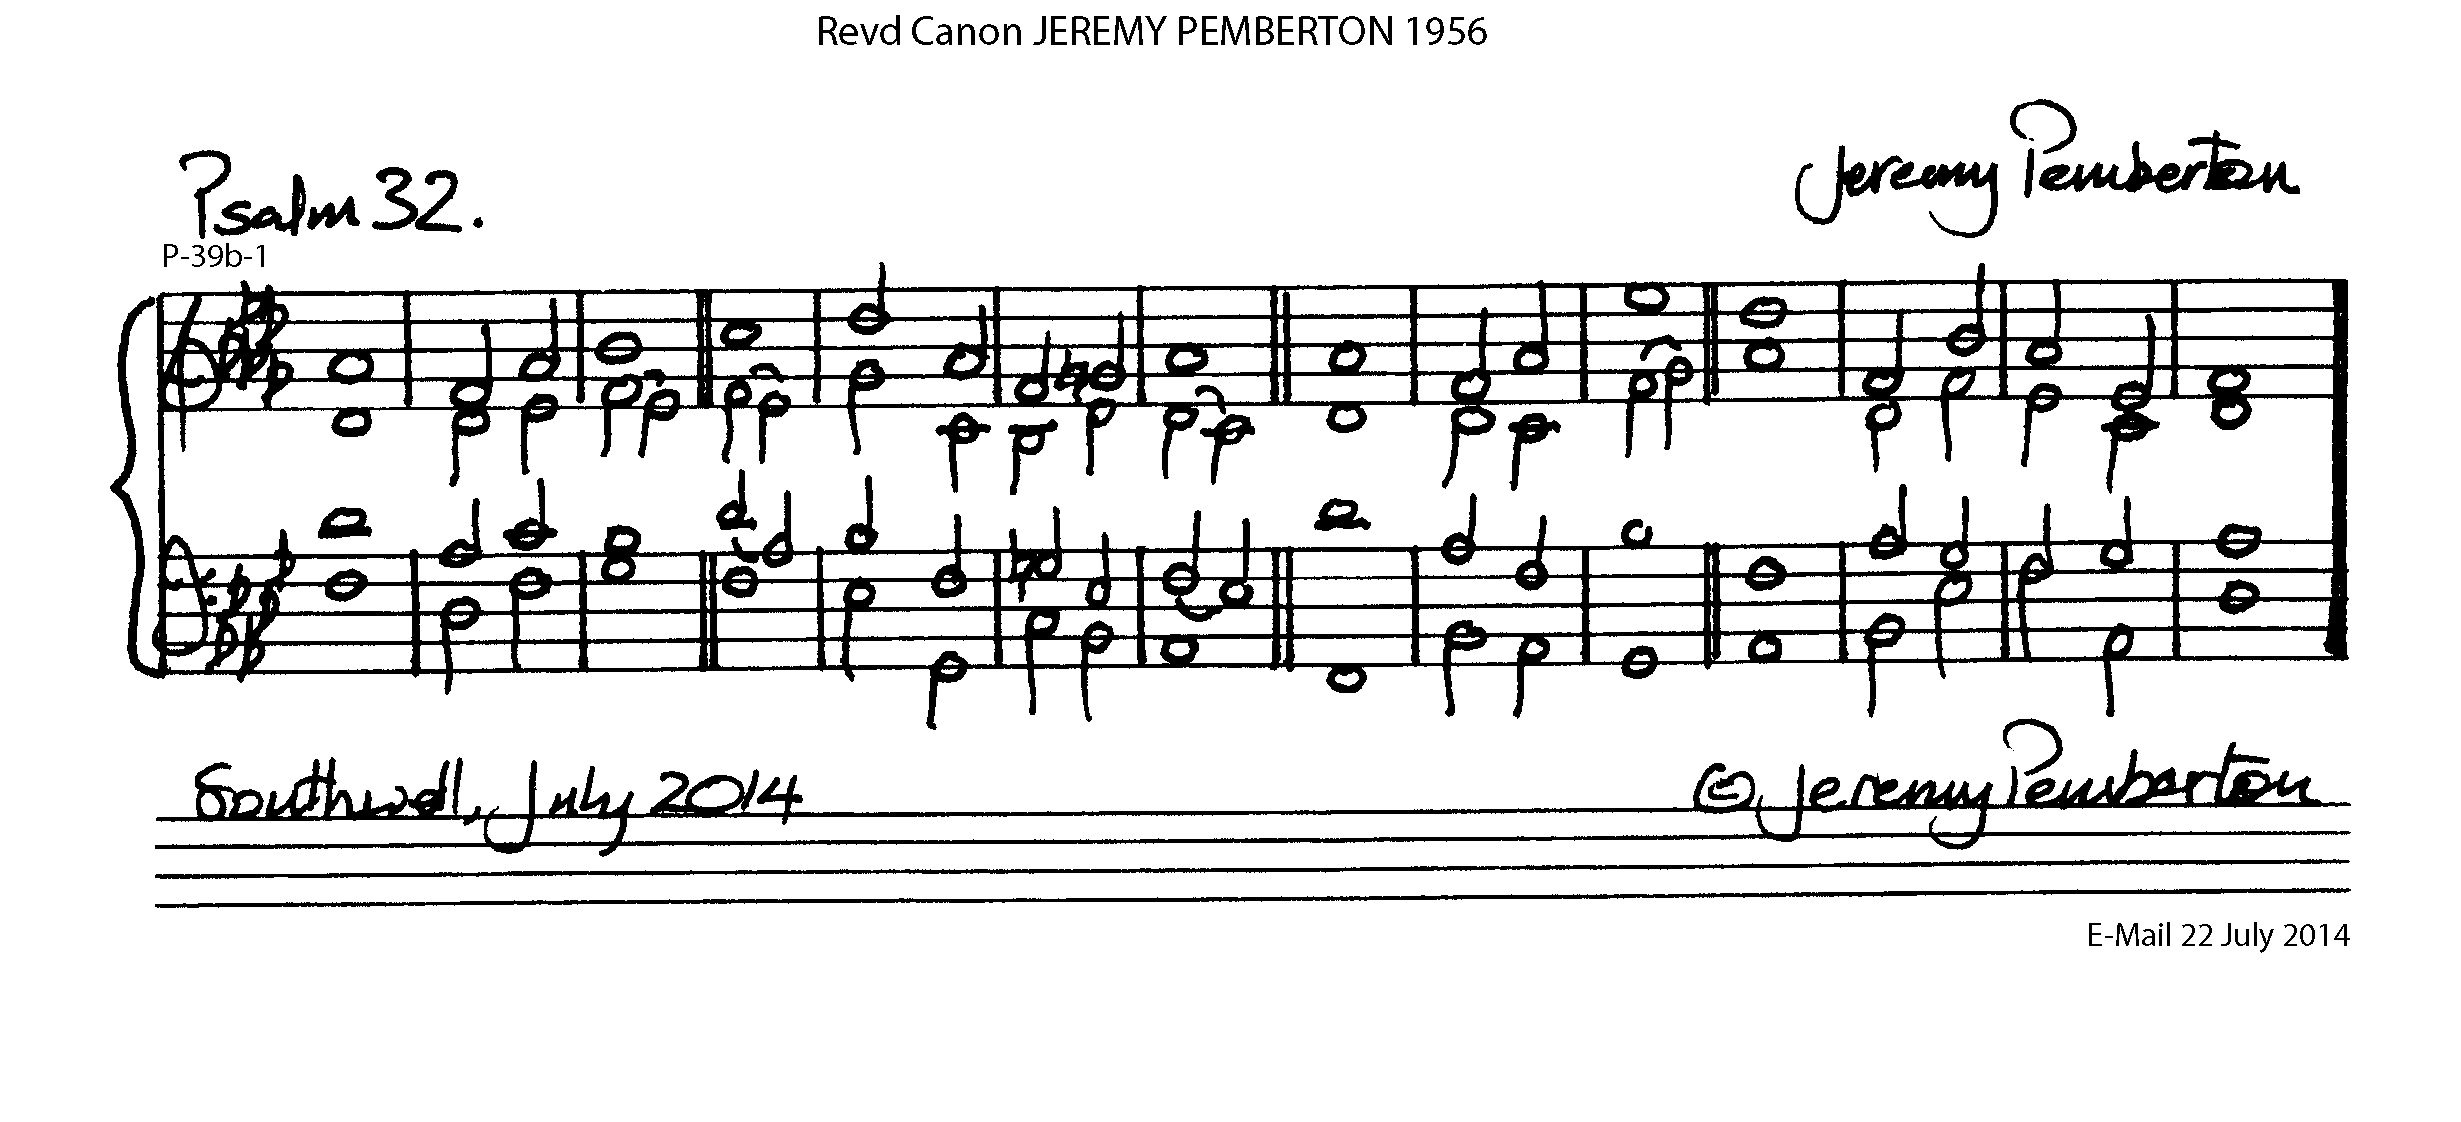 Double chant in D flat major by Reverend Canon Jeremy Pemberton set for Psalm 32